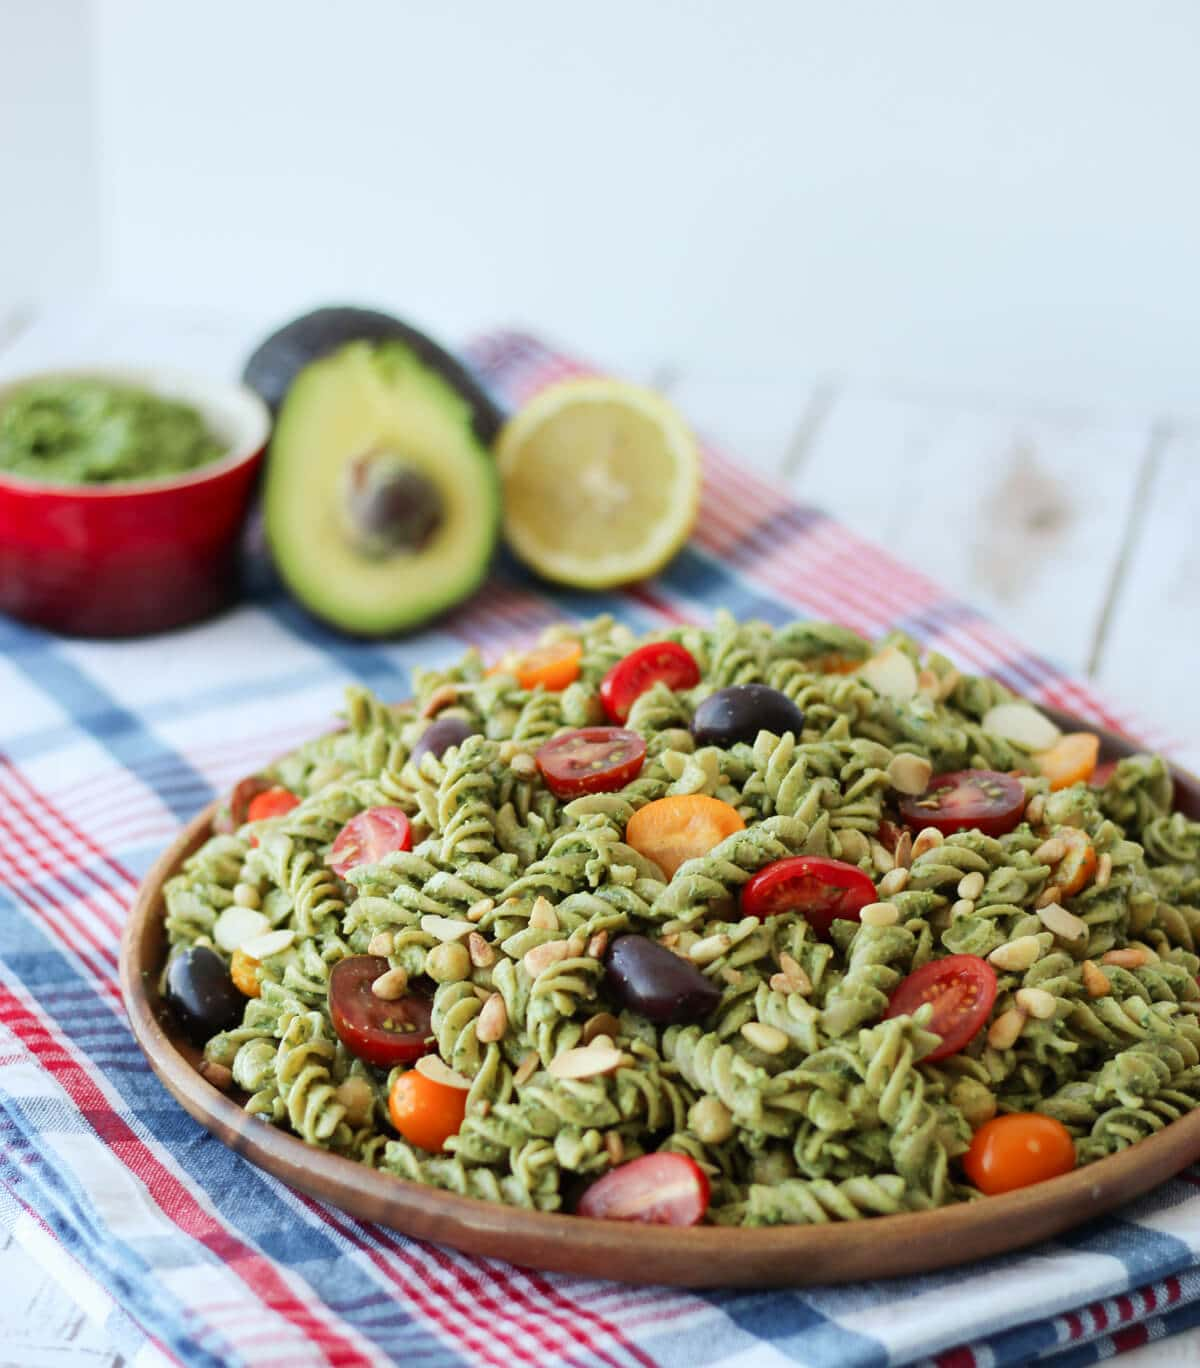 A wooden plate with pesto salad with sliced tomatoes.